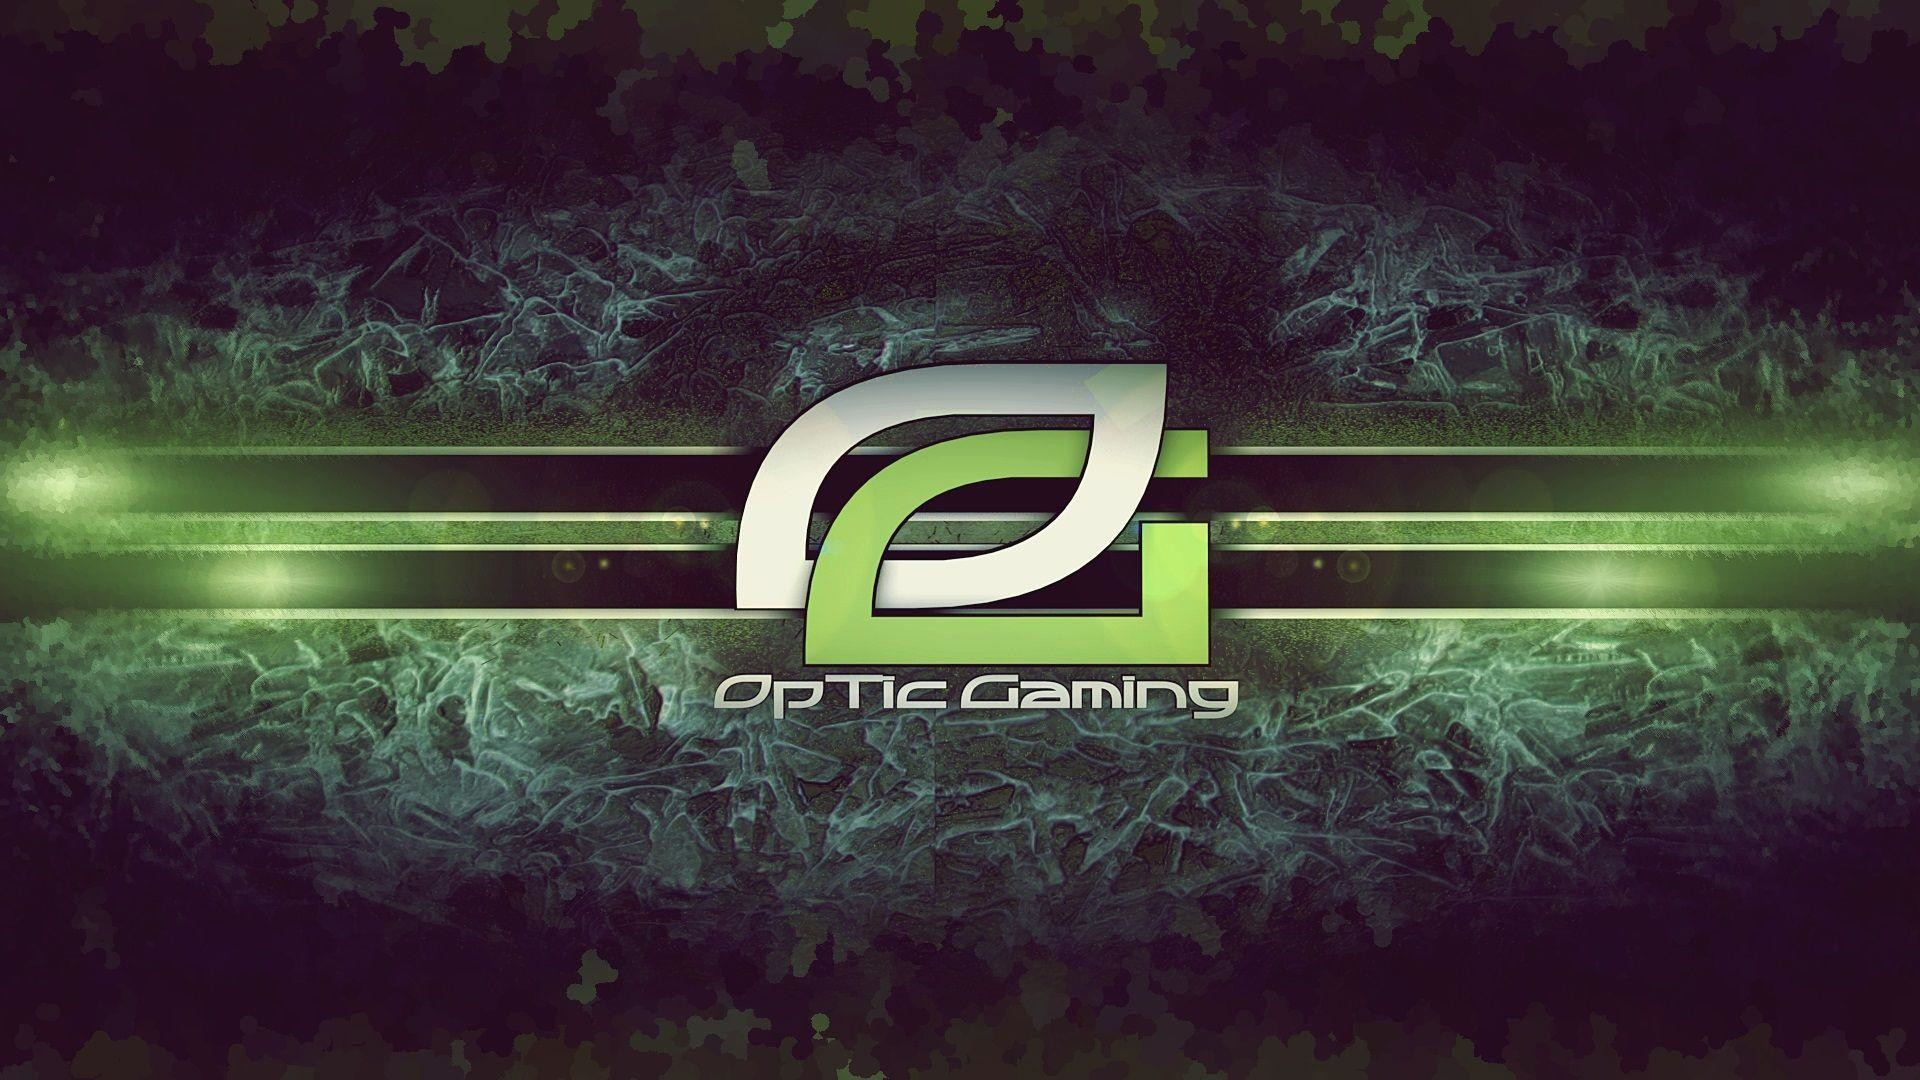 1920x1080 Optic Gaming Backgrounds | Wallpapers, Backgrounds, Images, Art ..